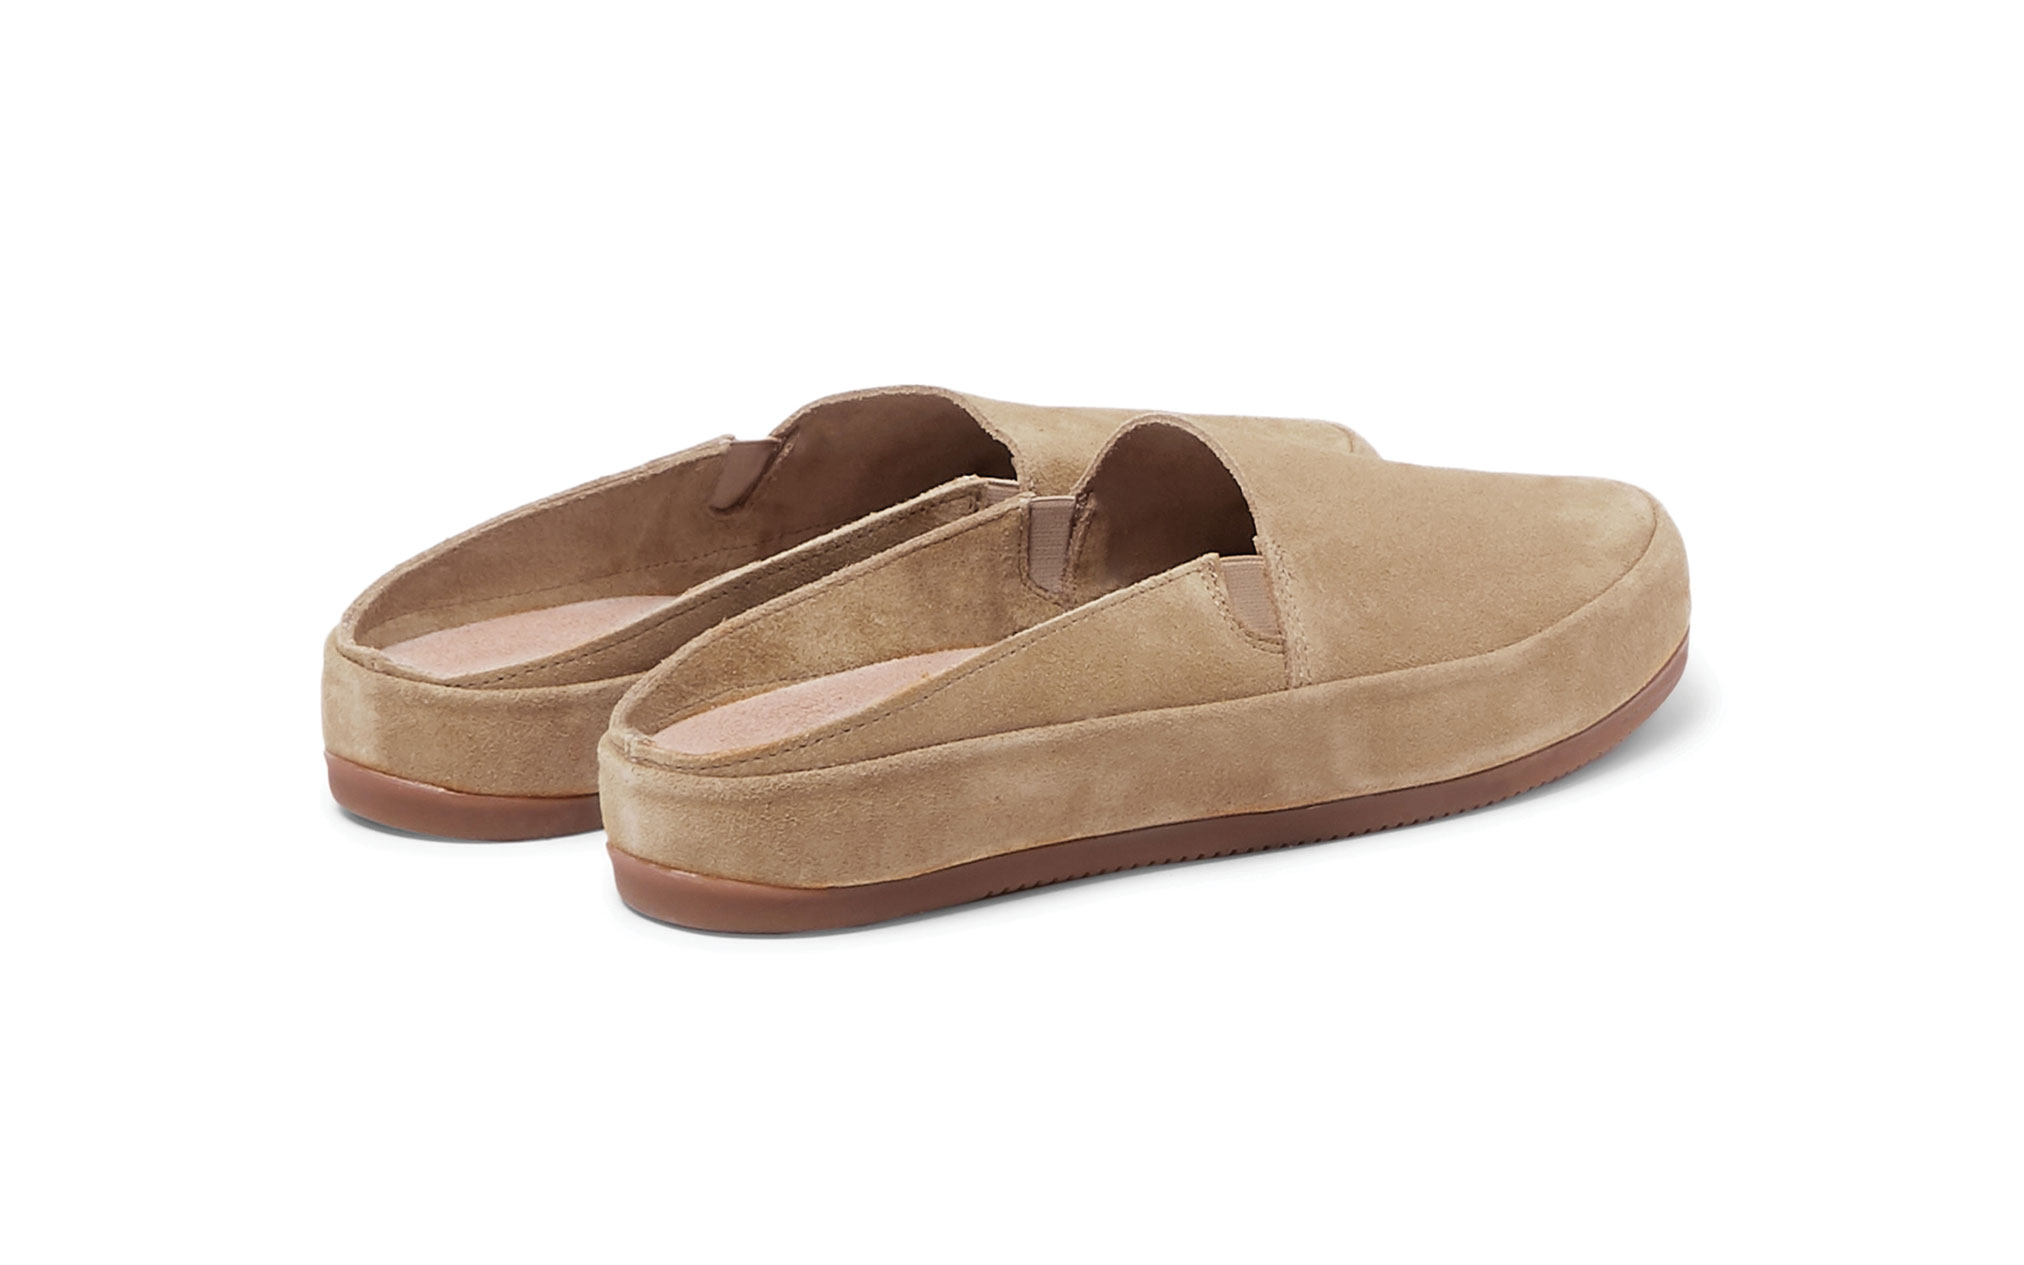 Mens Slippers in Tan Suede | MULO shoes